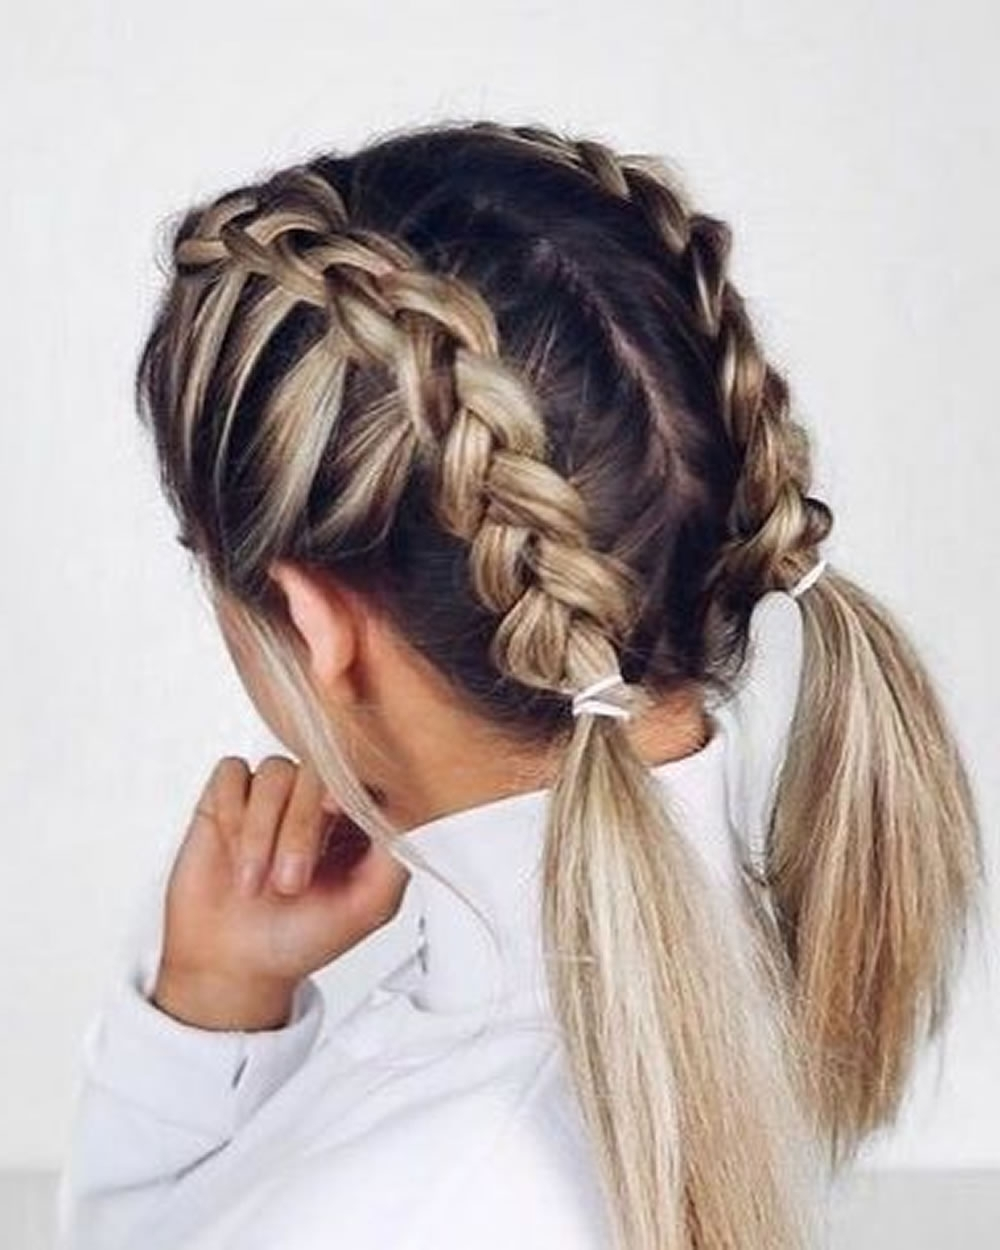 Fashionable Double French Braid Crown Hairstyles For French Braids 2018 (Mermaid, Half Up, Side, Fishtail Etc (View 4 of 15)